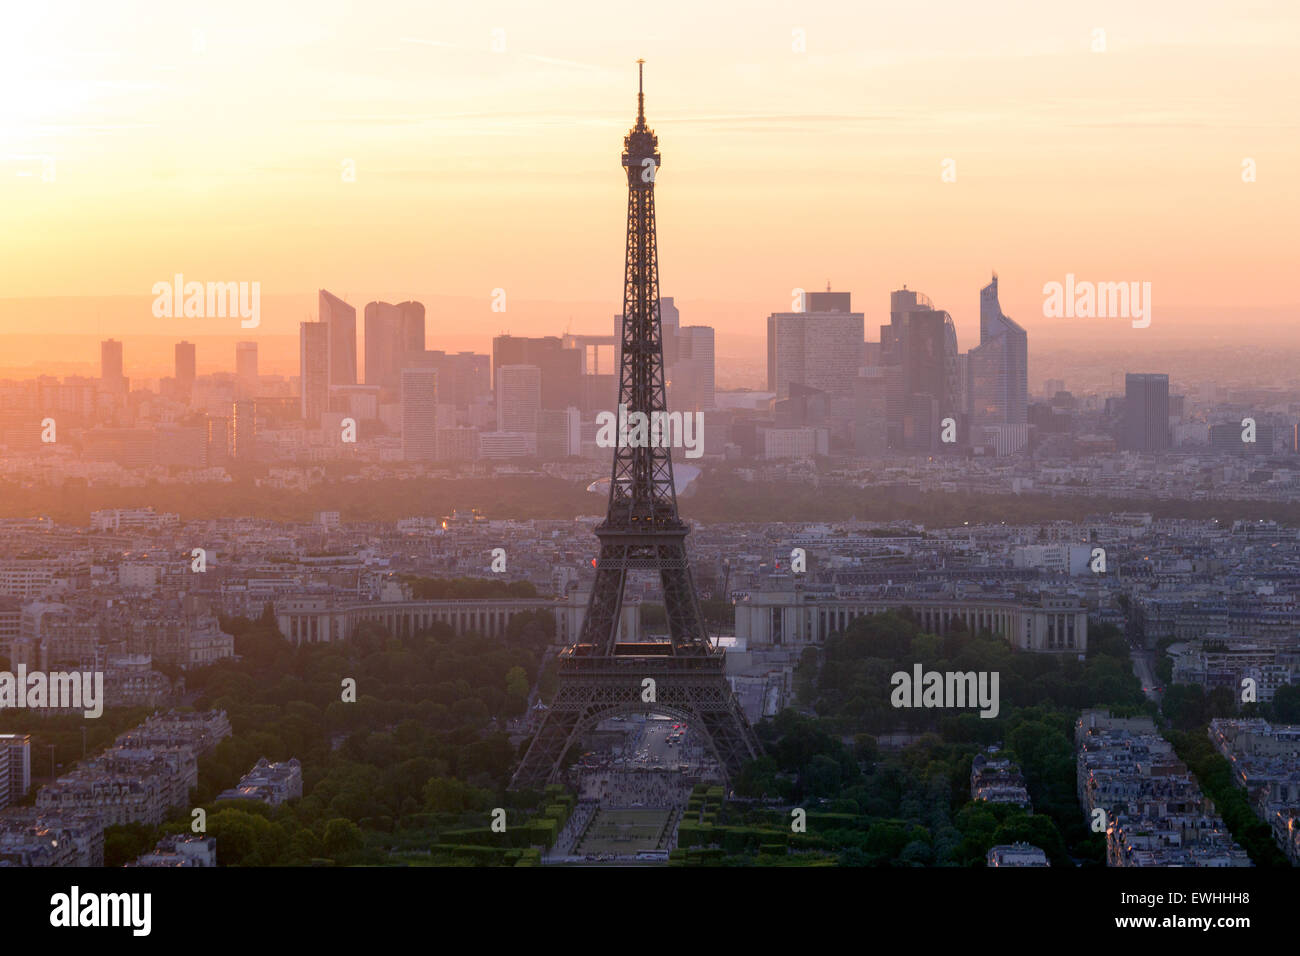 View on the Eiffel tower and the skyline of Paris, France - Stock Image